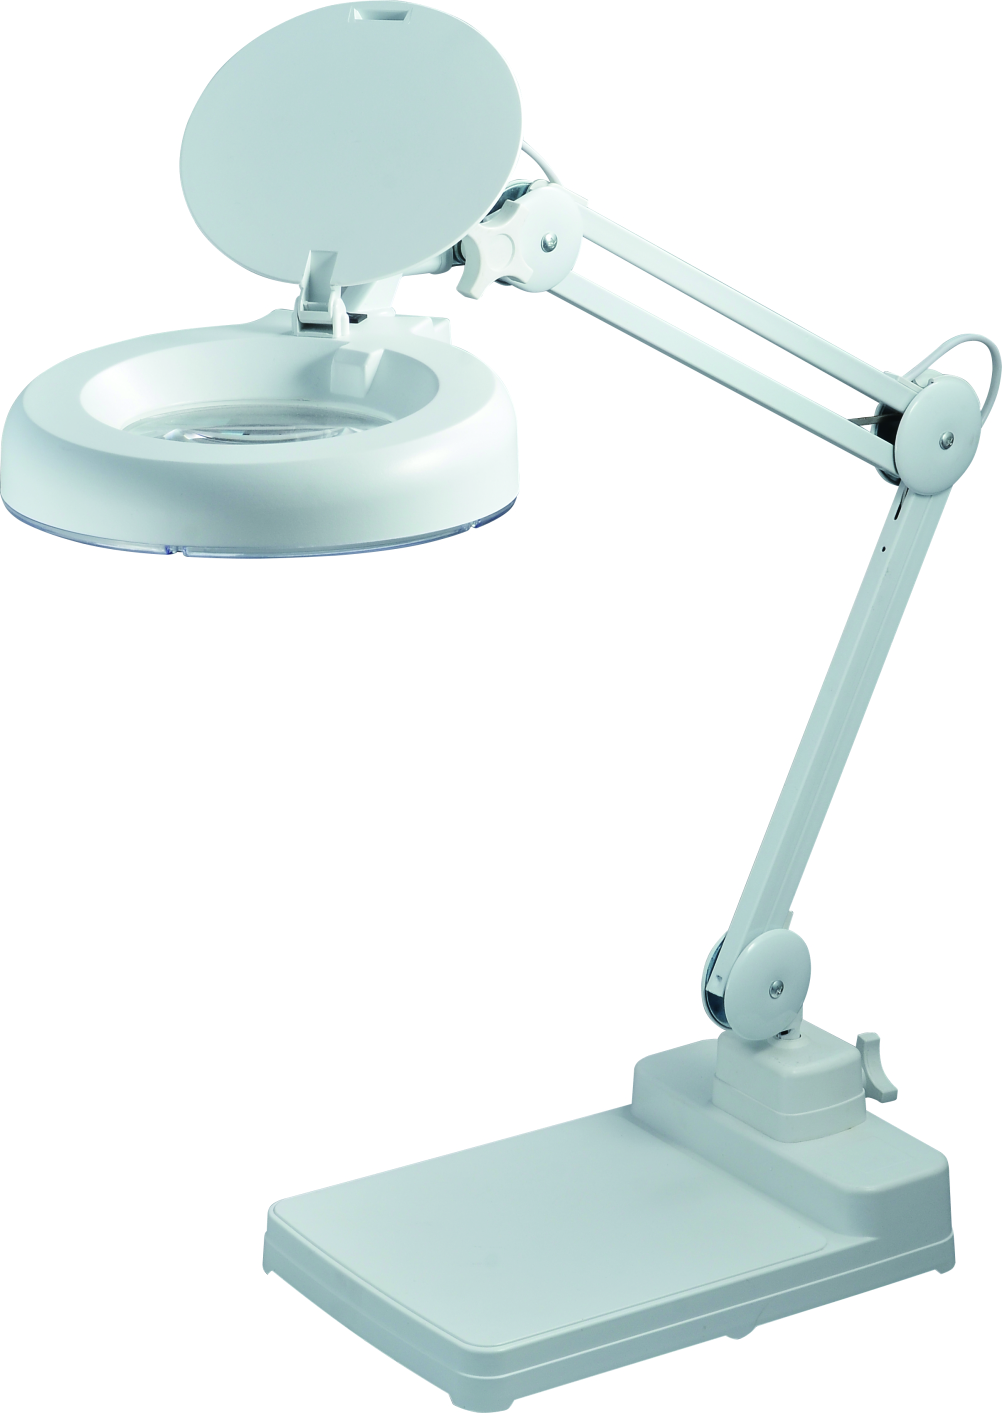 Magnifying Lamp Table Magnifier Base (8606DL)